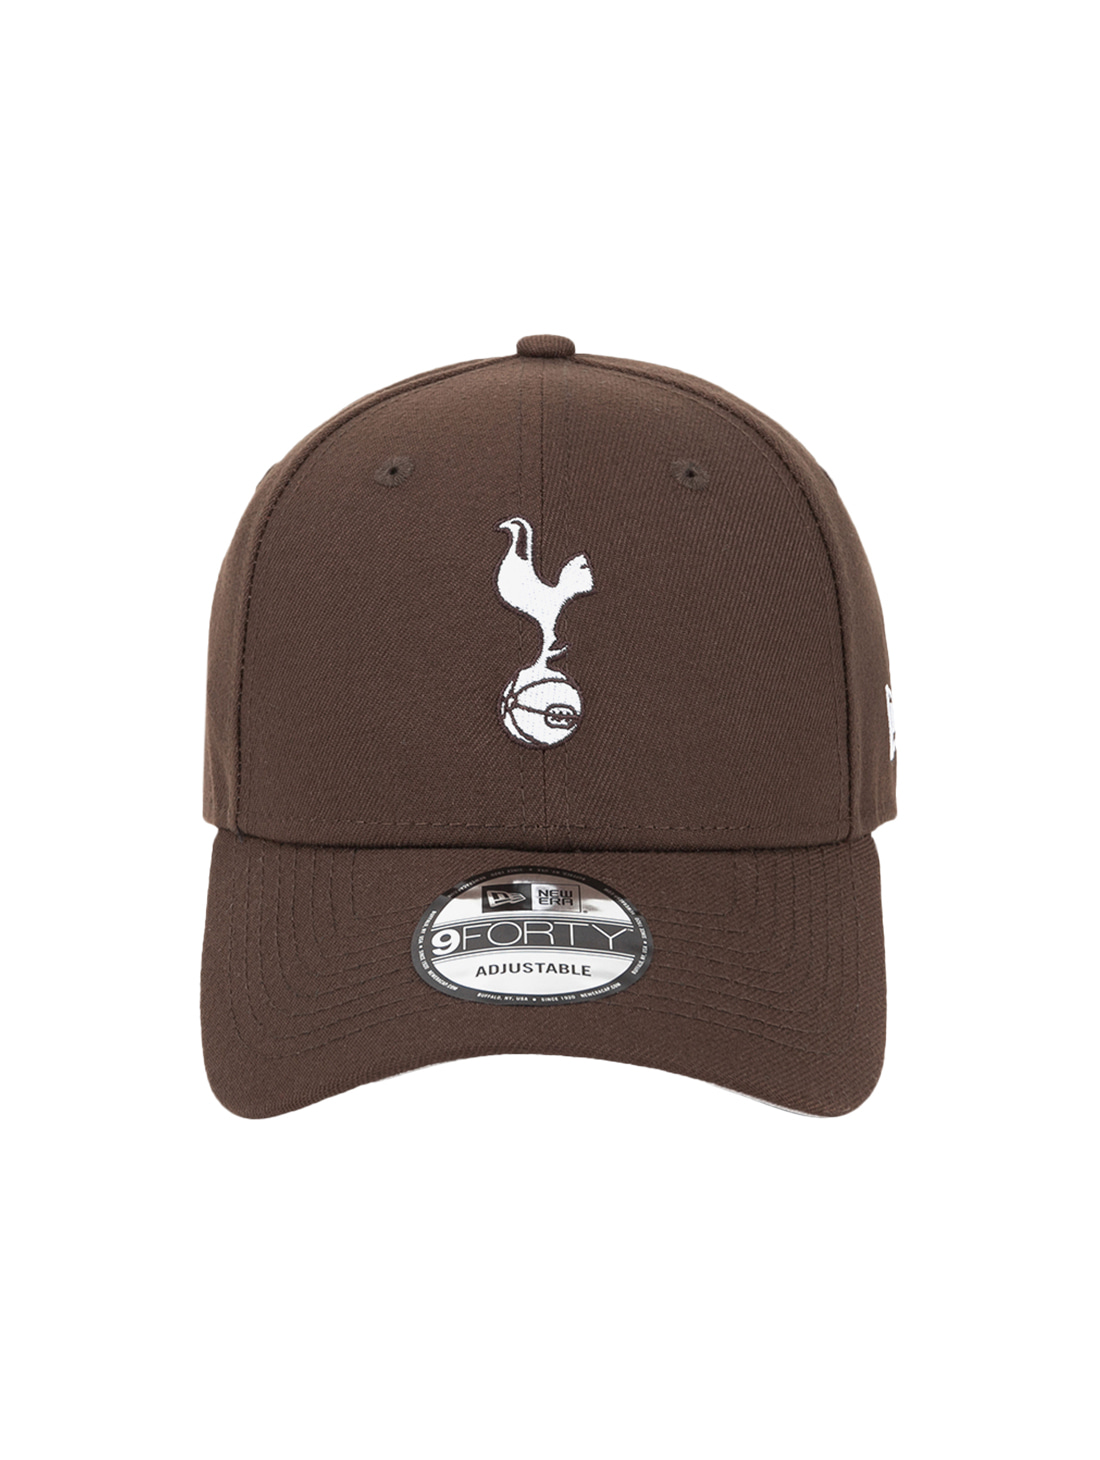 TOTTENHAM 940 BALL CAP - WALNUT